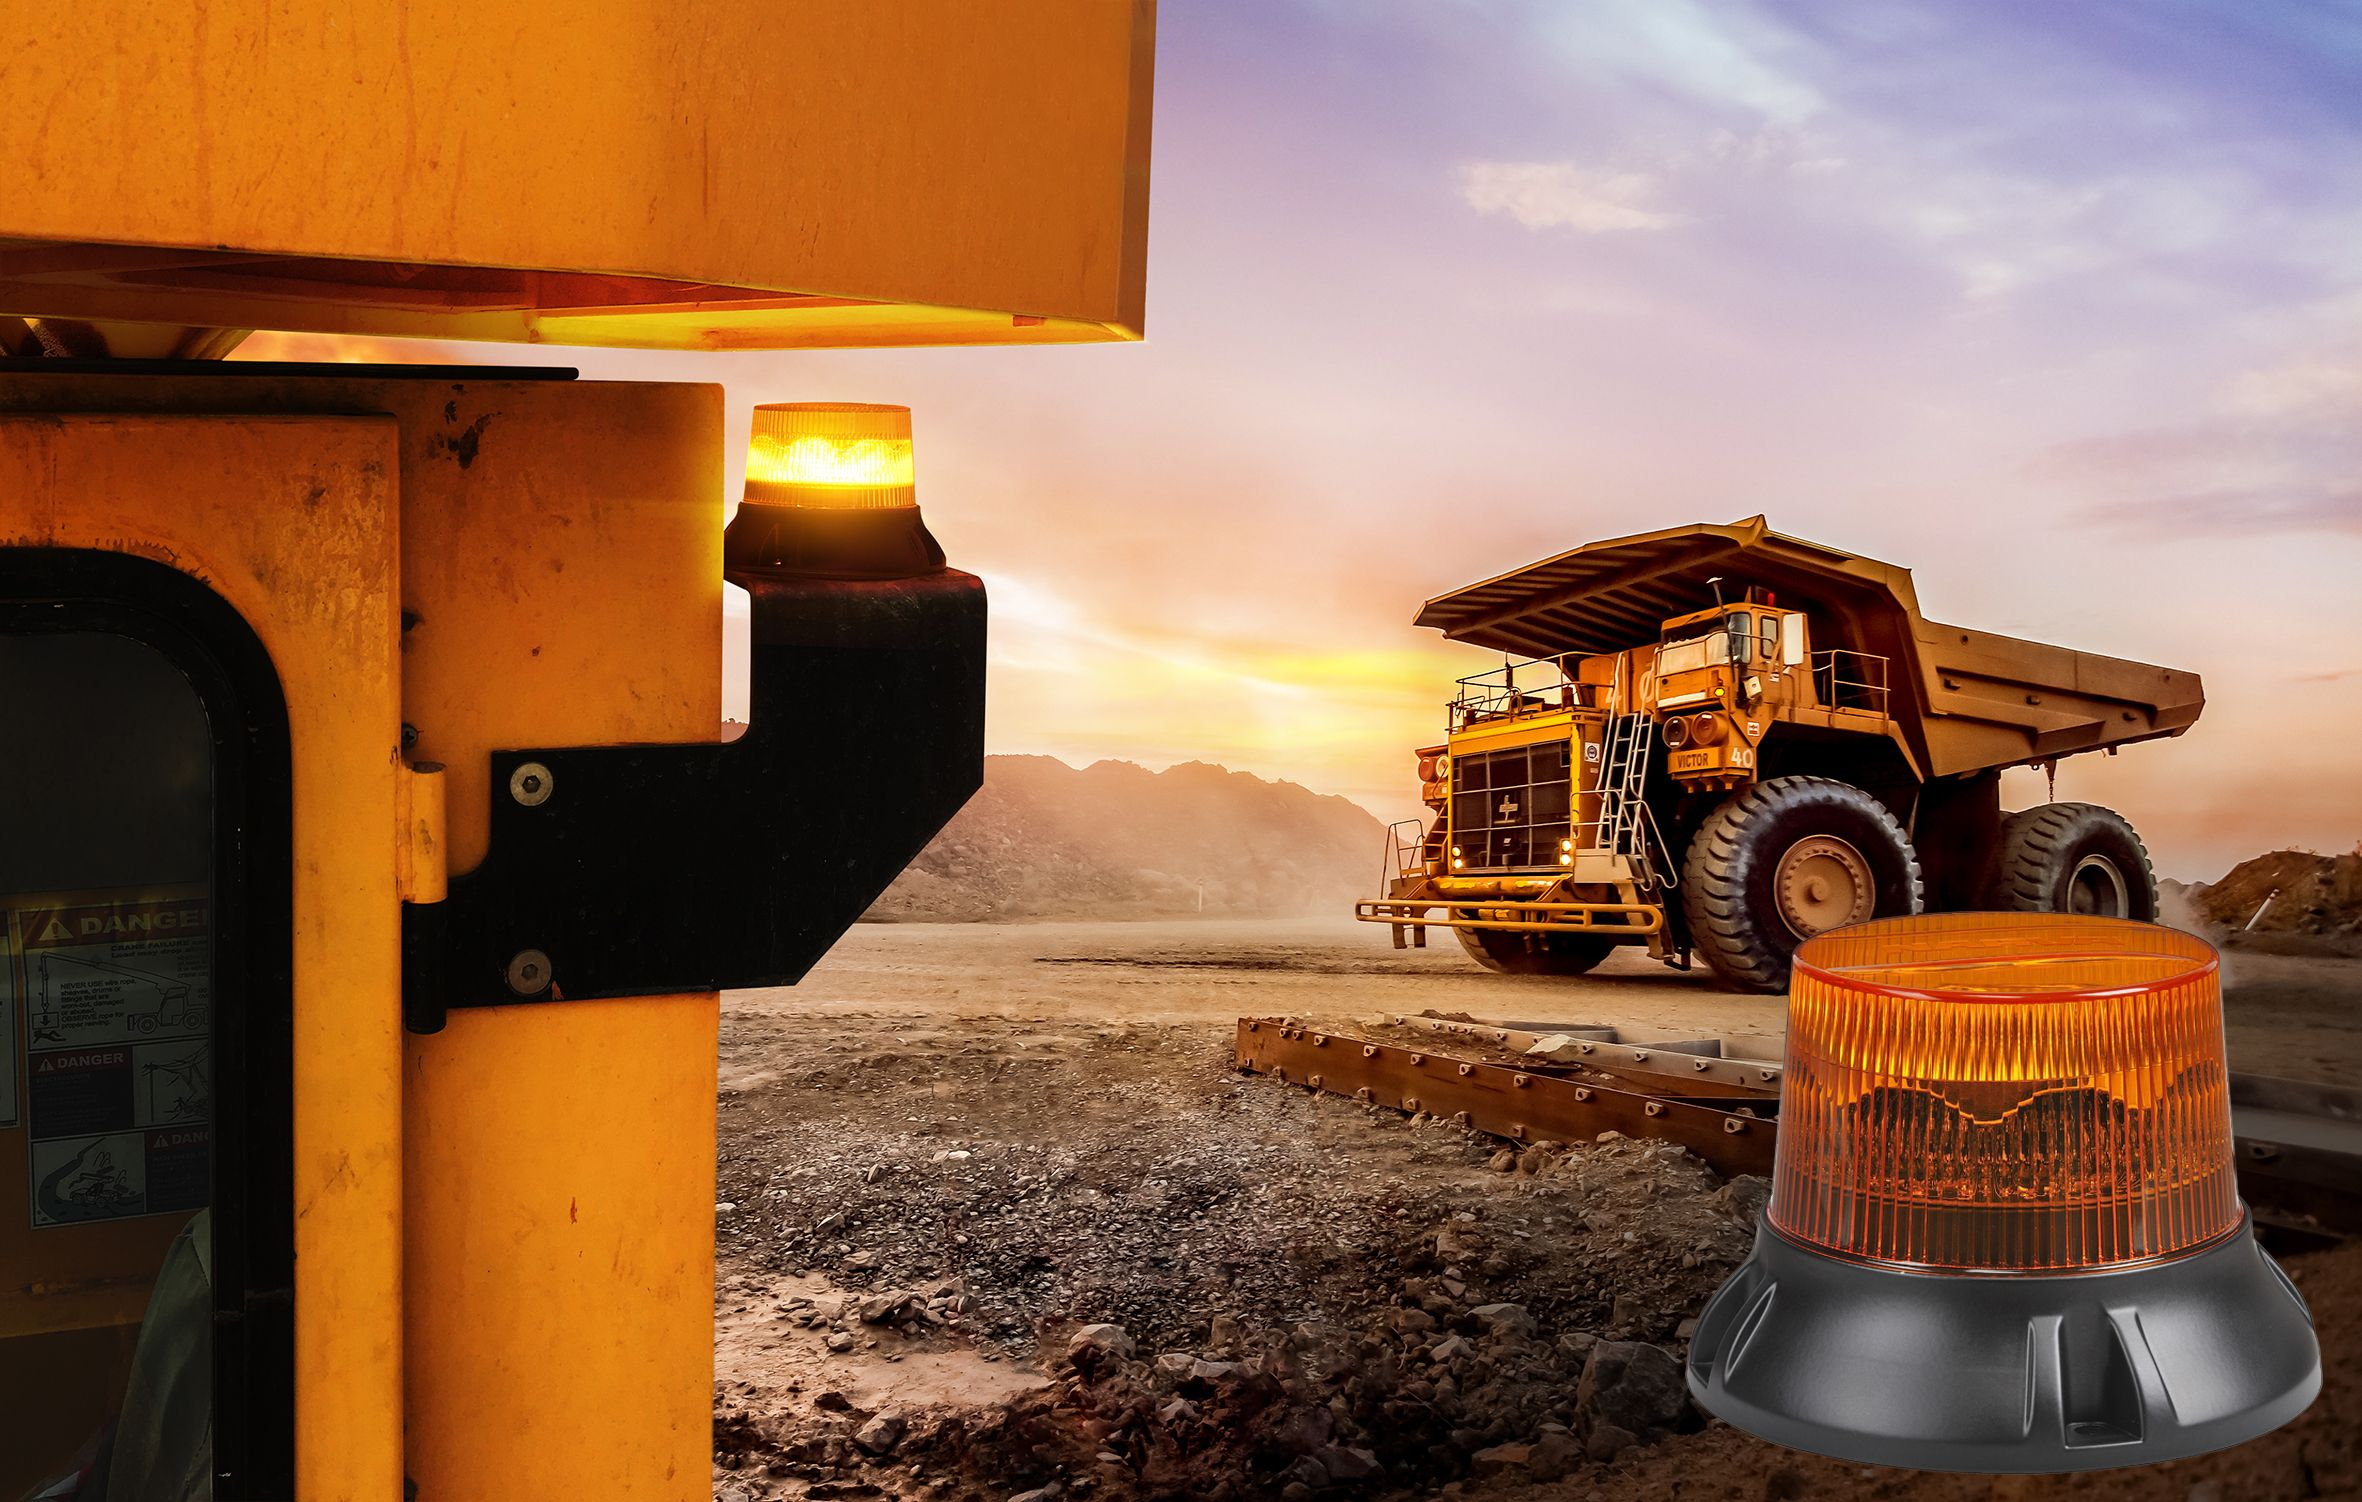 narva-geomax-strobe-built-tough-for-mining-construction-and-agricultural